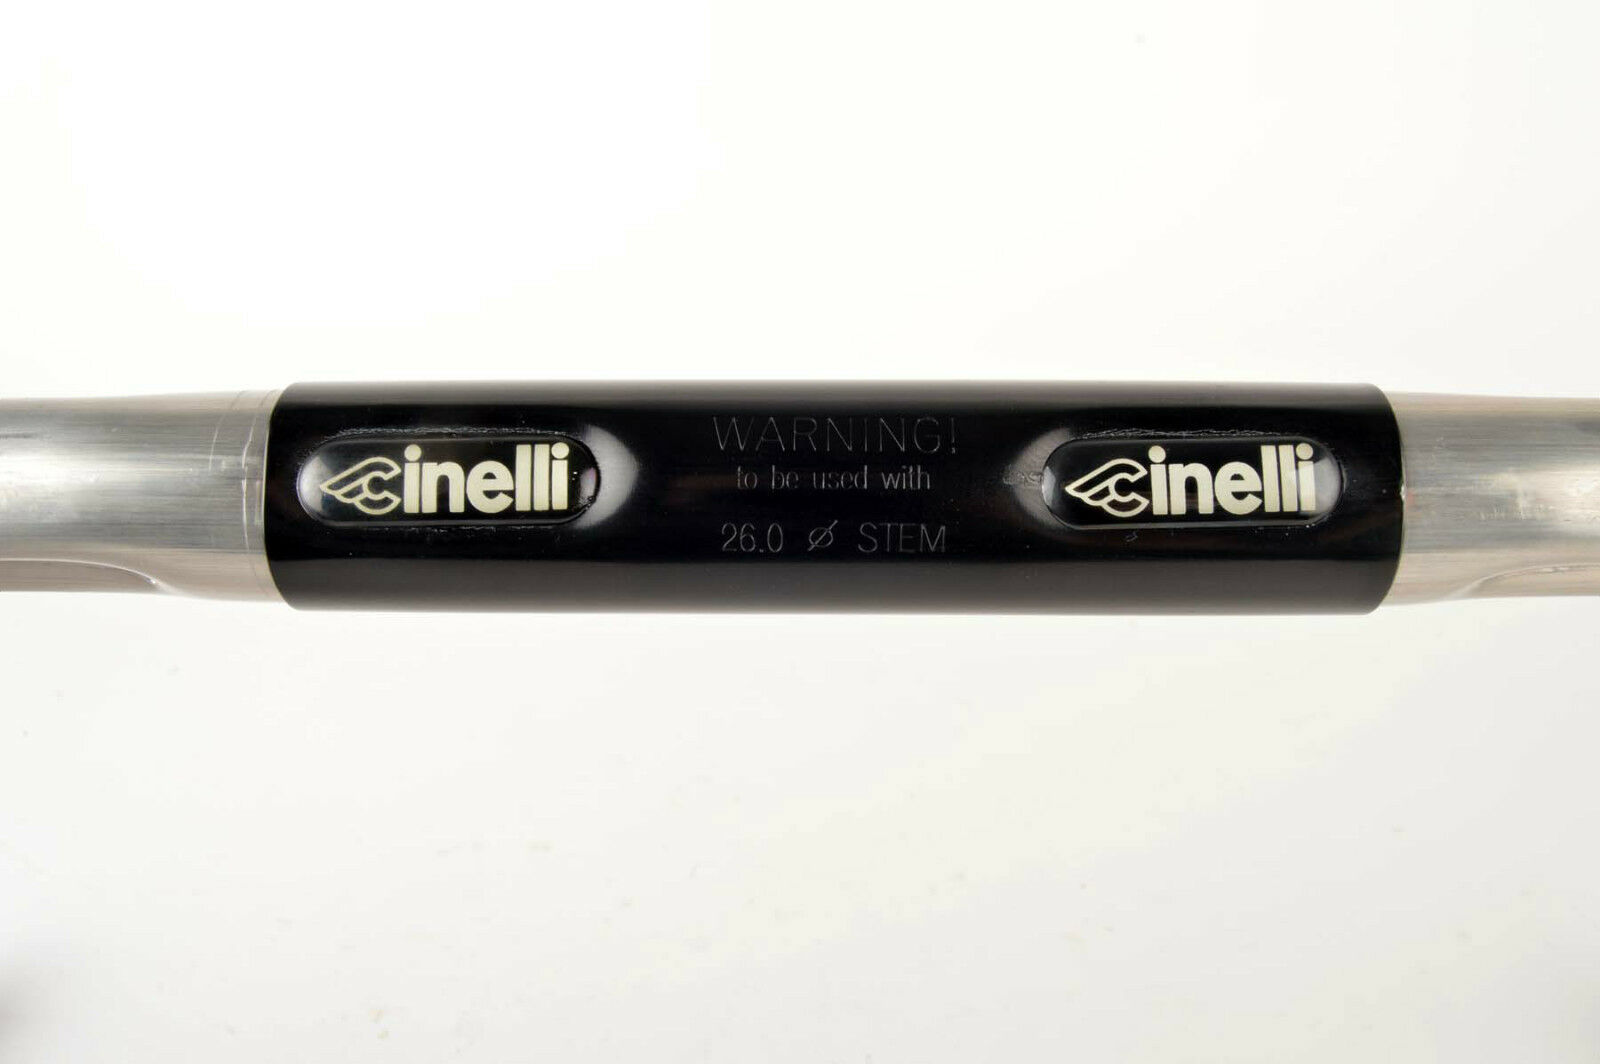 NEW Cinelli Touch Eco Handlebar 42 cm, 26.0 clampsize NOS